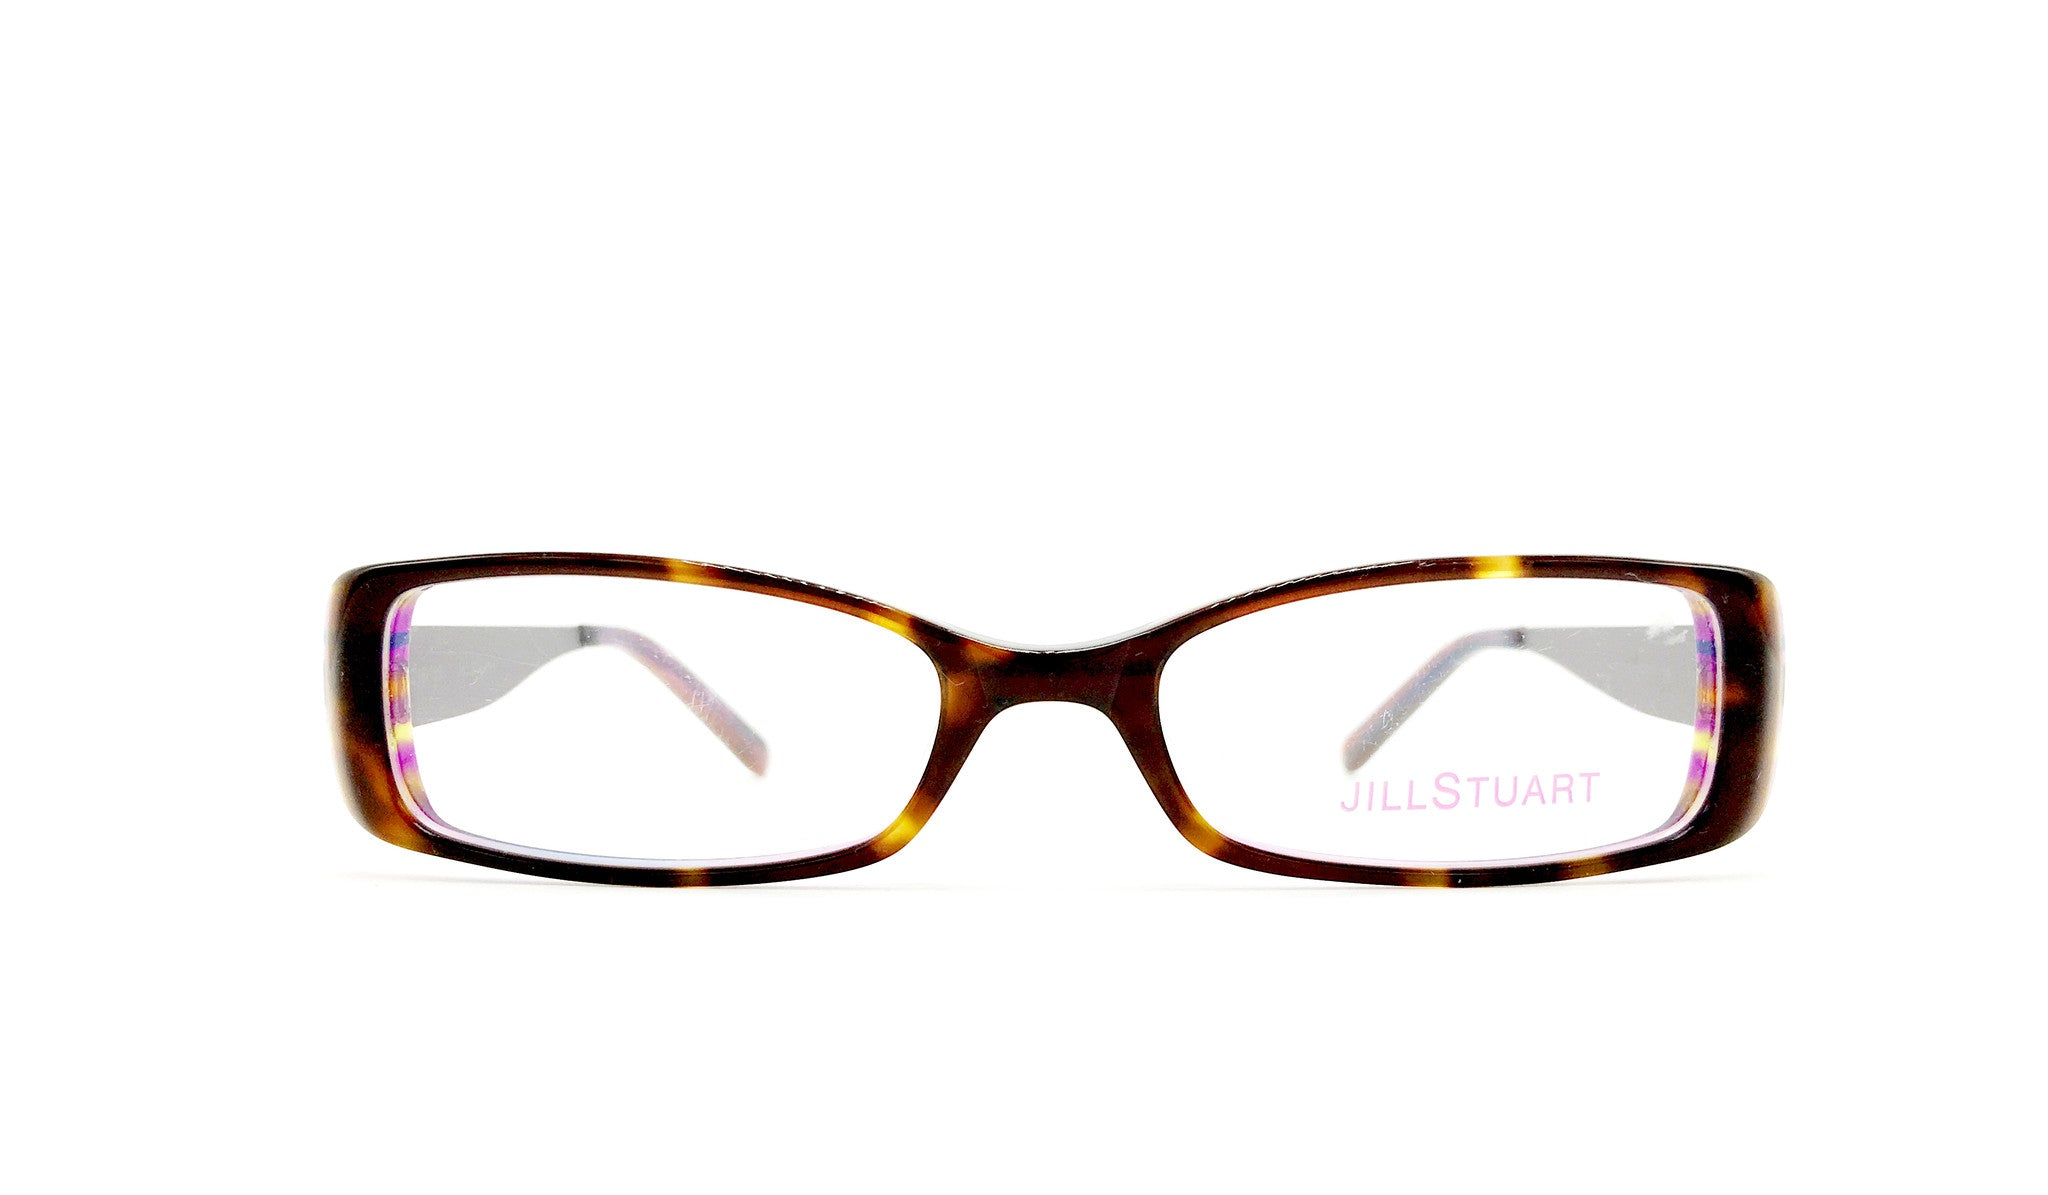 Jill Stuart Glasses